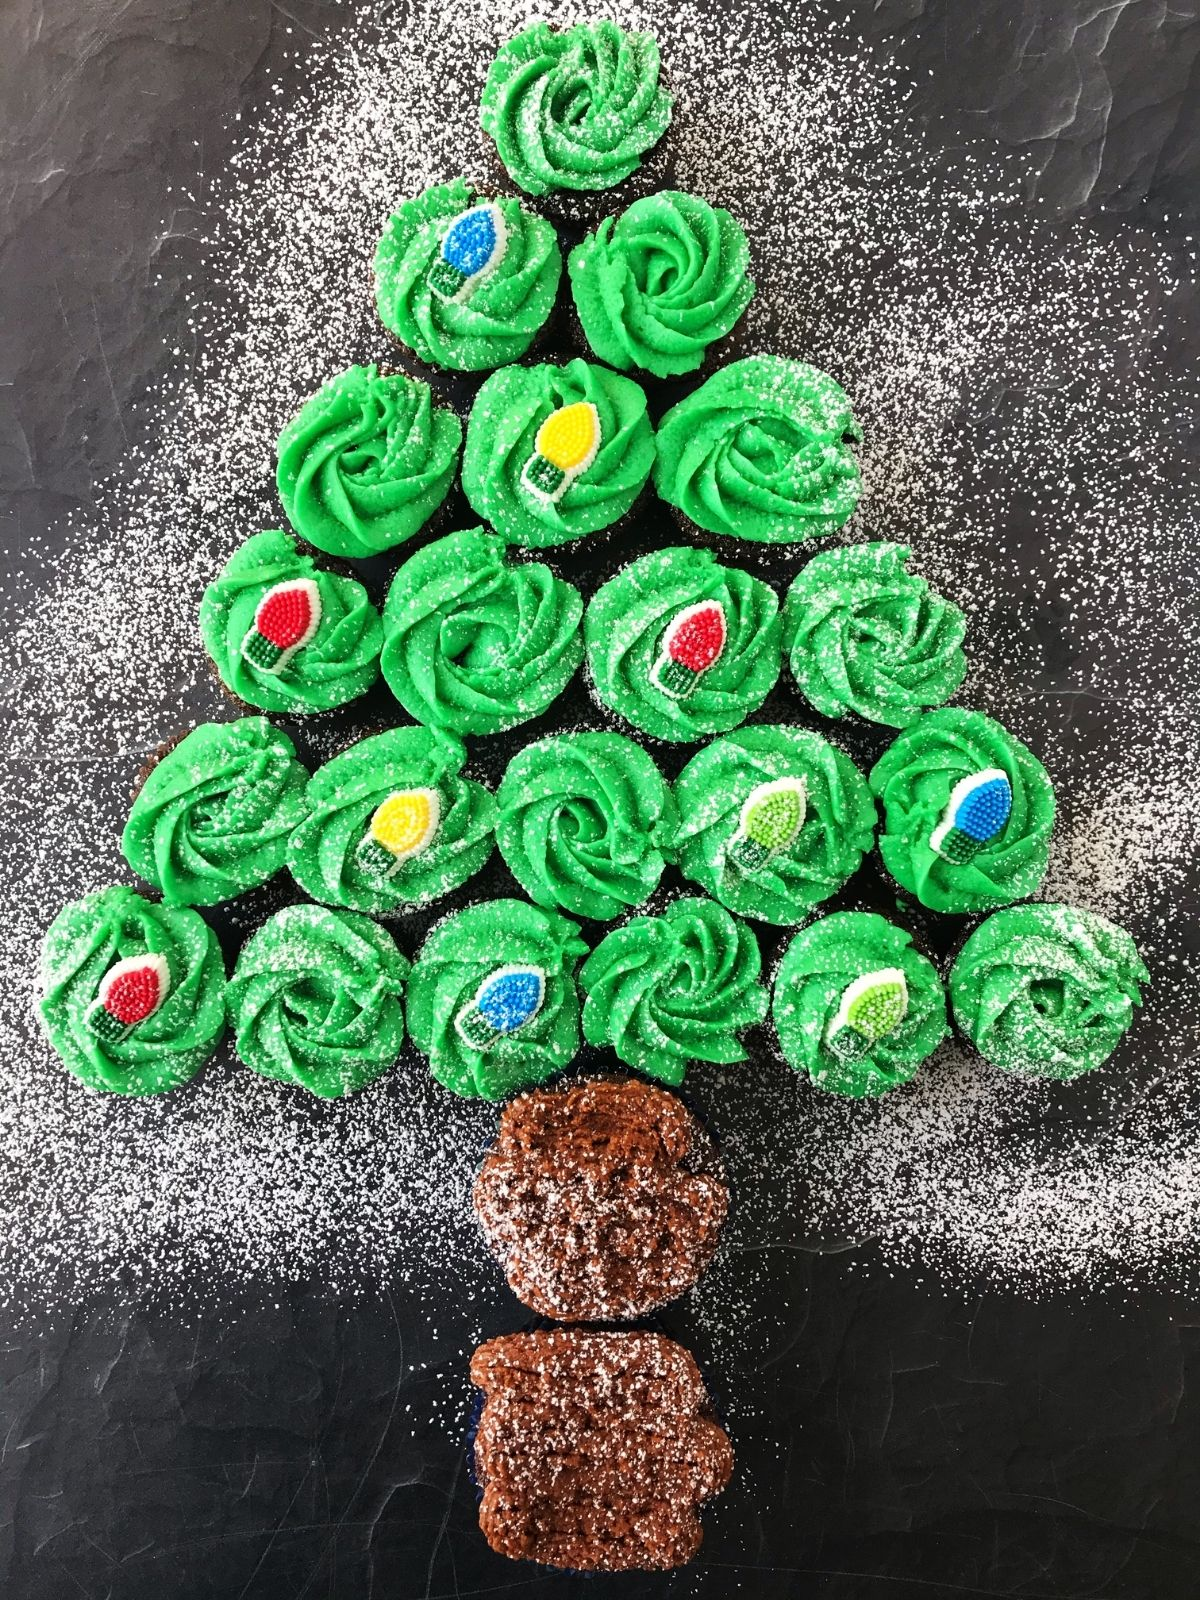 cupcakes arranged in Christmas tree from with a dusting of powdered sugar